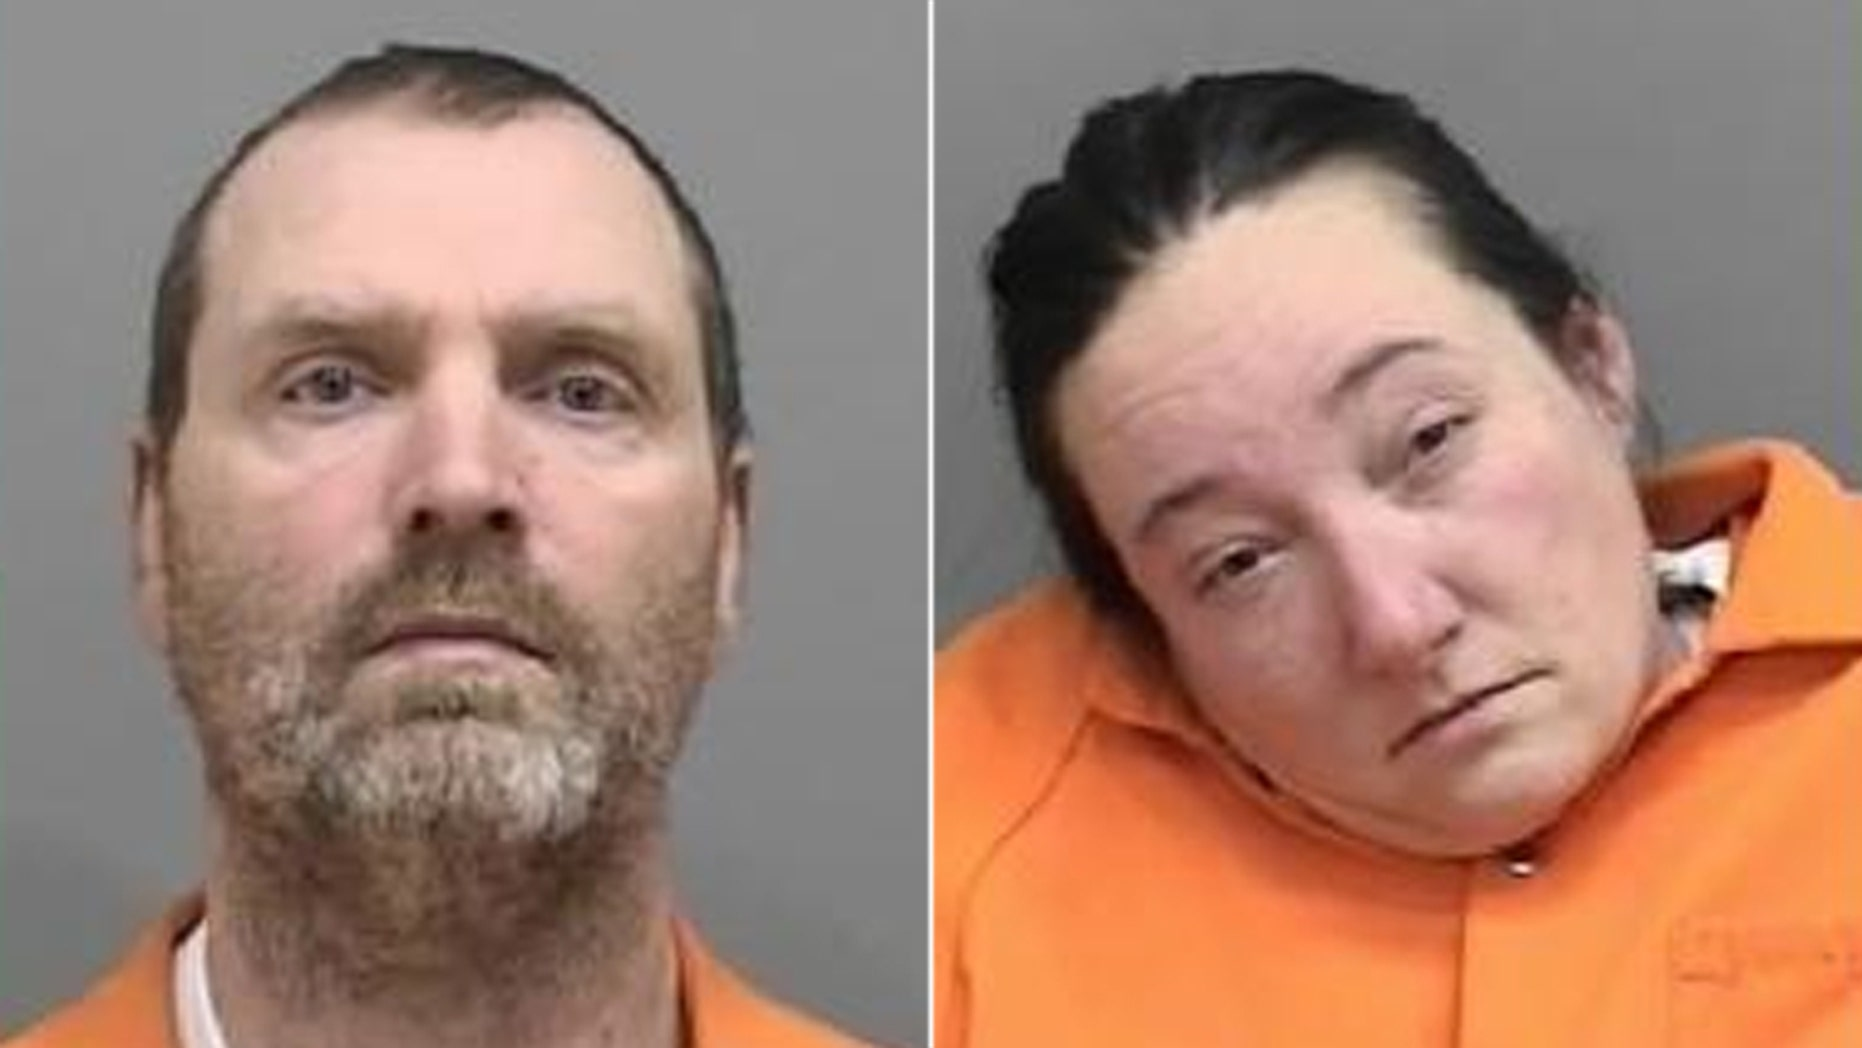 Timothy and Tina Hauschultz and their 15-year-old son have been charged with the murder of a seven-year-old boy in their care who died last year of blunt force trauma and hypothermia